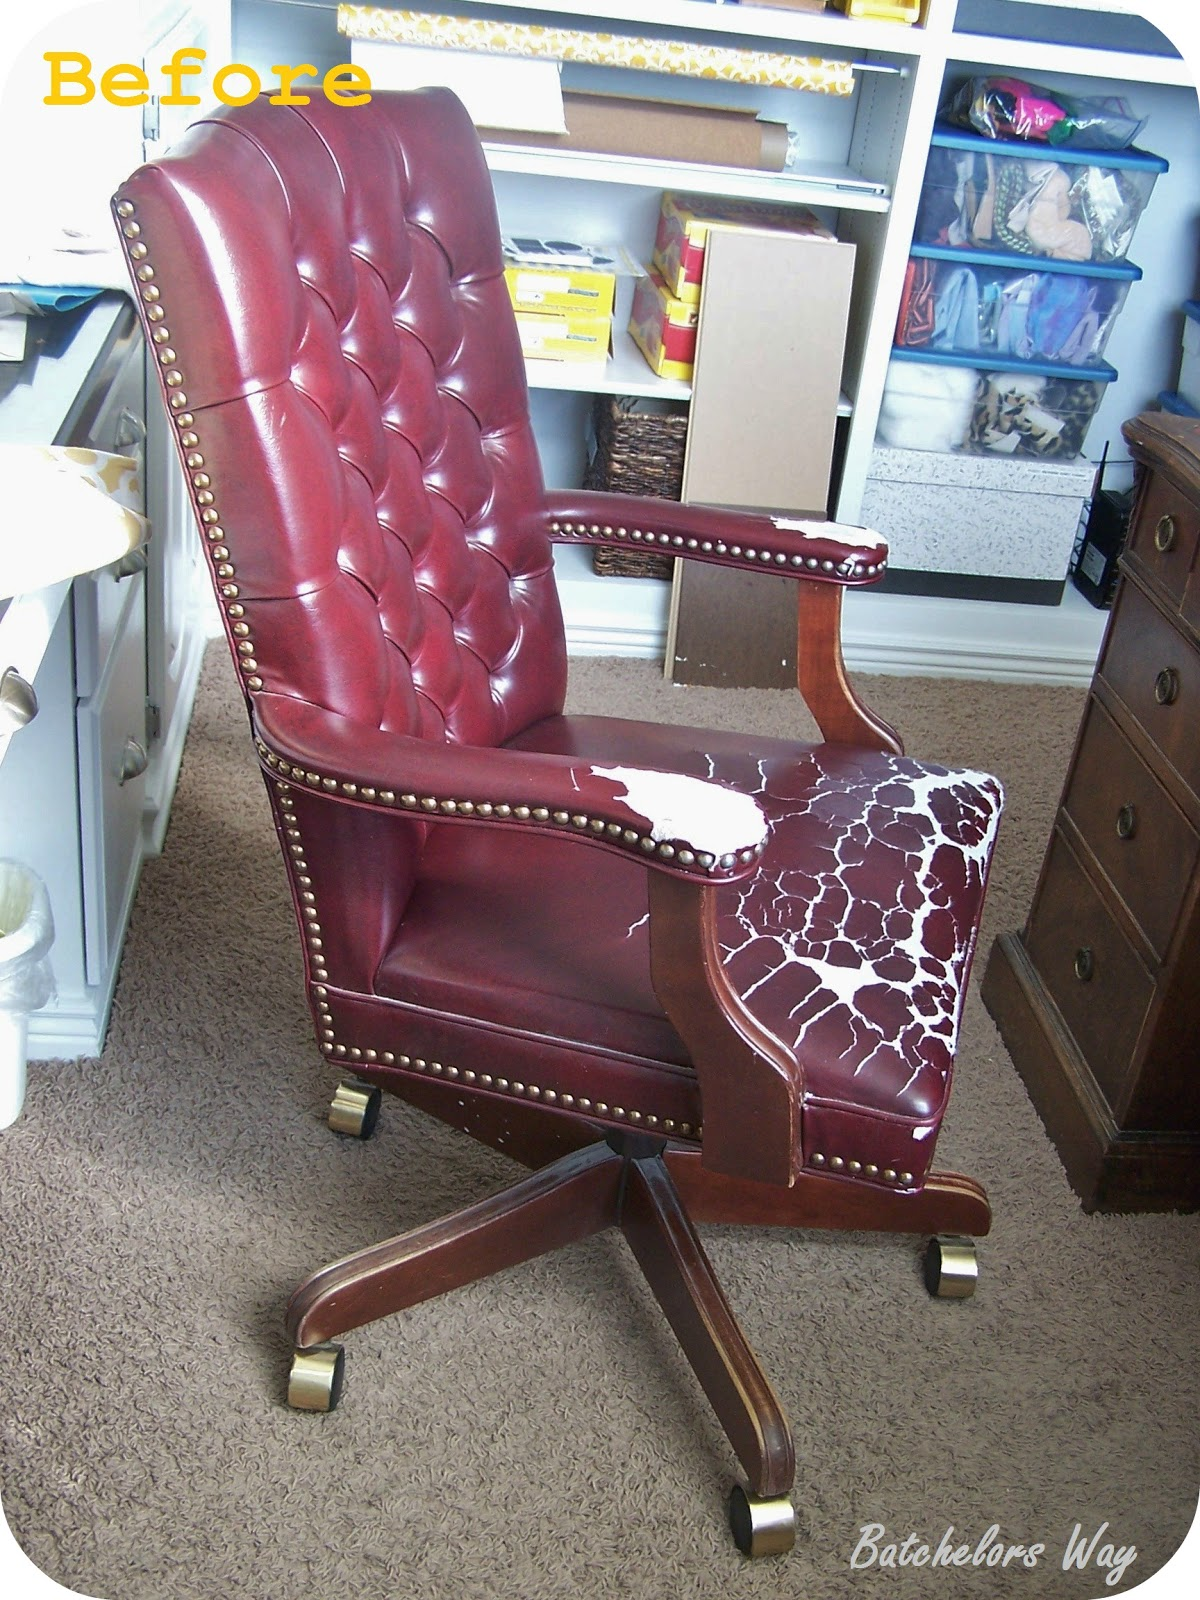 Batchelors Way: Office Redo - How to Reupholster a Chair ...